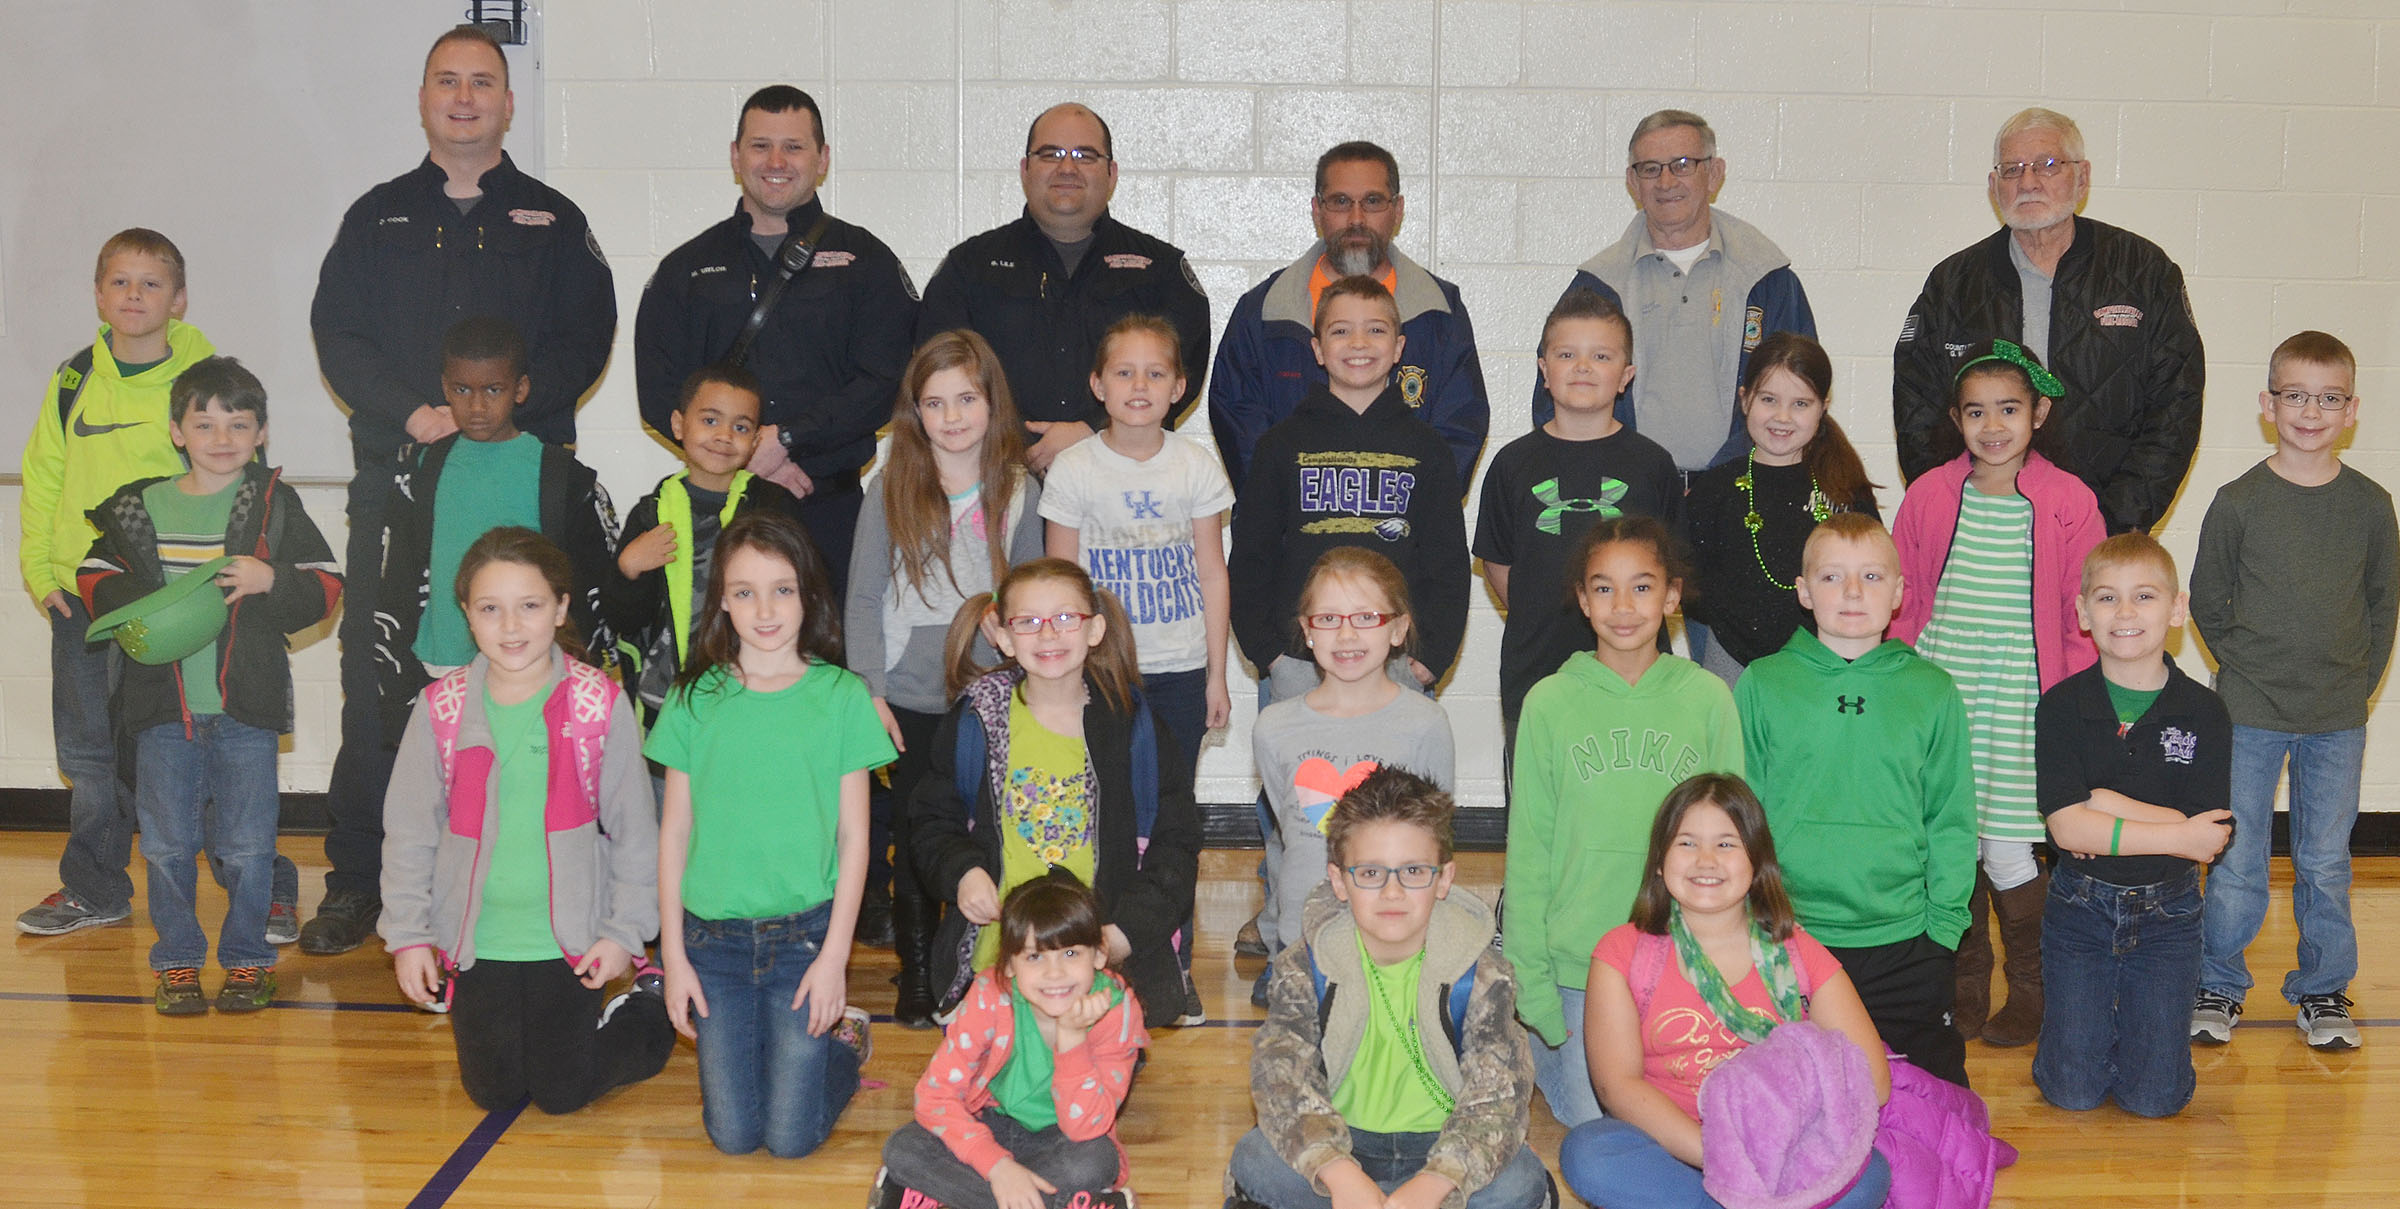 From left, front, are first-grader Phoebe Ritchie and second-graders Dalton Shively and Marissa Sumners. Second row, second-grader Keely Rakes, third-grader Paige Ritchie, second-grader Sammantha Wooley, third-graders Gracie Pendleton, De'Asia Fisher and Ryder Murphy and second-grader Joseph Greer. Third row, second-graders Codey Parks and Kae'vin Spaulding, first-graders Trace Richardson and Bree Farmer, third-graders Madisyn Bradfield and Carson Mills, second-grader Cayton Lawhorn, third-grader Maylee Wilds, second-grader Sophia Santos and third-grader Cameron Estes. Back, second-grader Evan Lockridge, Campbellsville Fire & Rescue firefighters Daniel Cook and Matthew Taylor and Captain Brent Lile, Taylor County Fire Department volunteer Randy Bricken Jr., Assistant Chief Randy Bricken Sr. and Chief George Wilson.